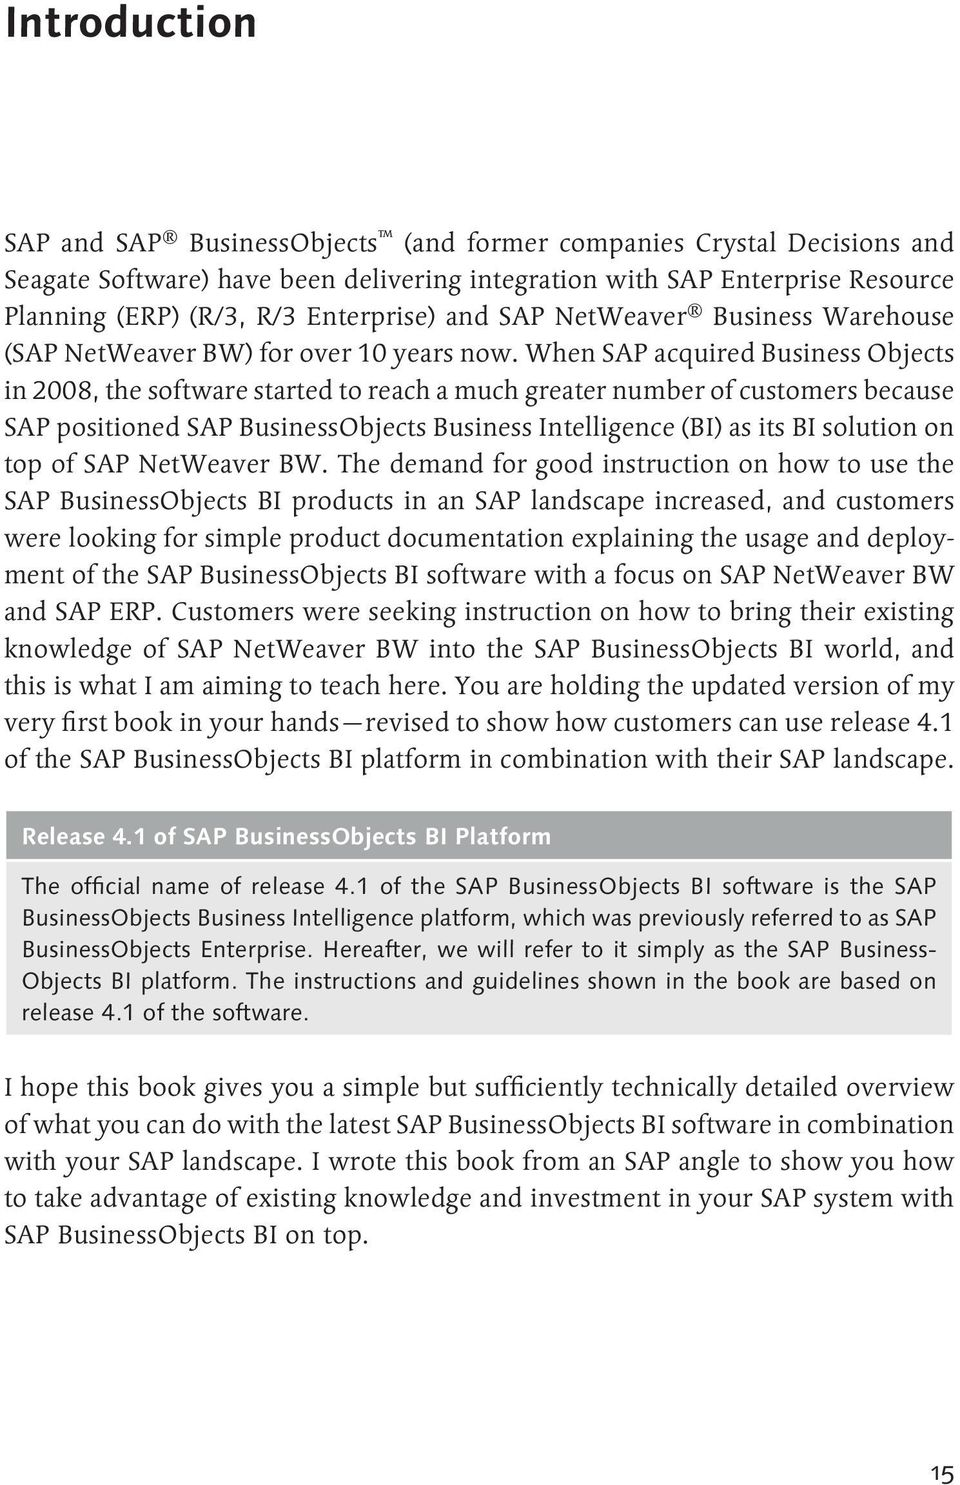 When SAP acquired Business Objects in 2008, the software started to reach a much greater number of customers because SAP positioned SAP Business Objects Business Intelligence (BI) as its BI solution